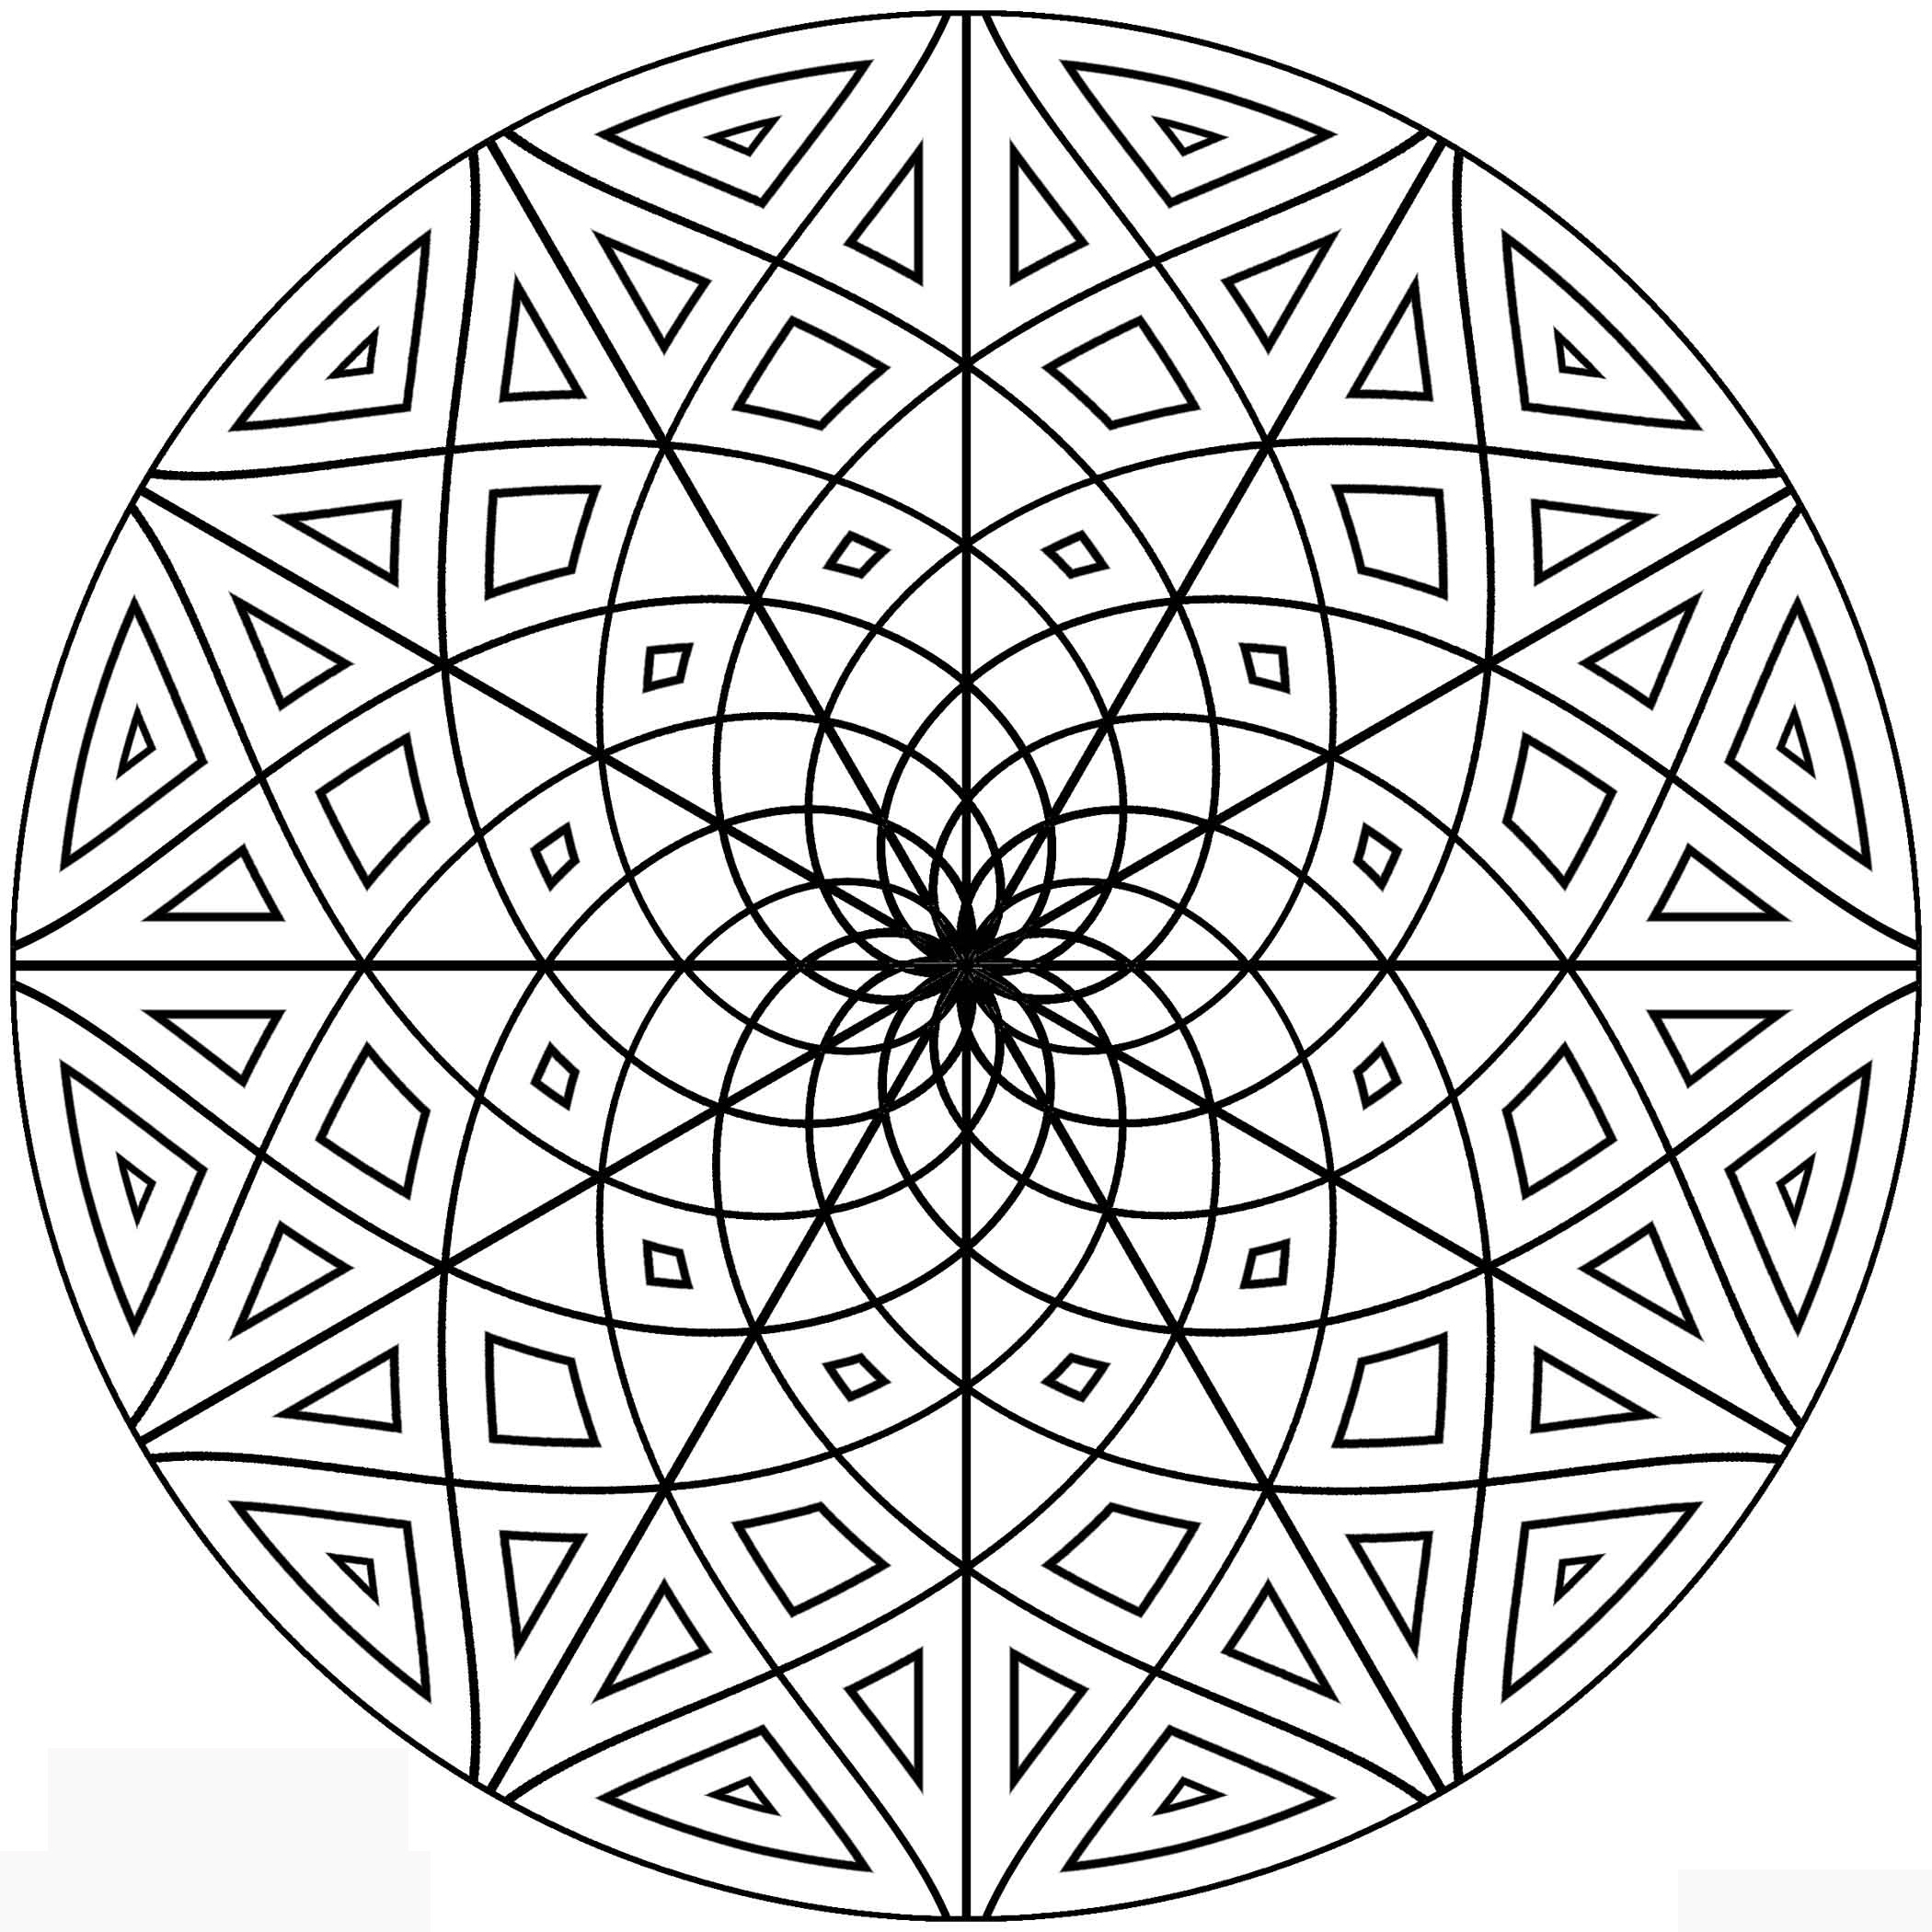 coloring pages designs free printable geometric coloring pages for adults designs pages coloring